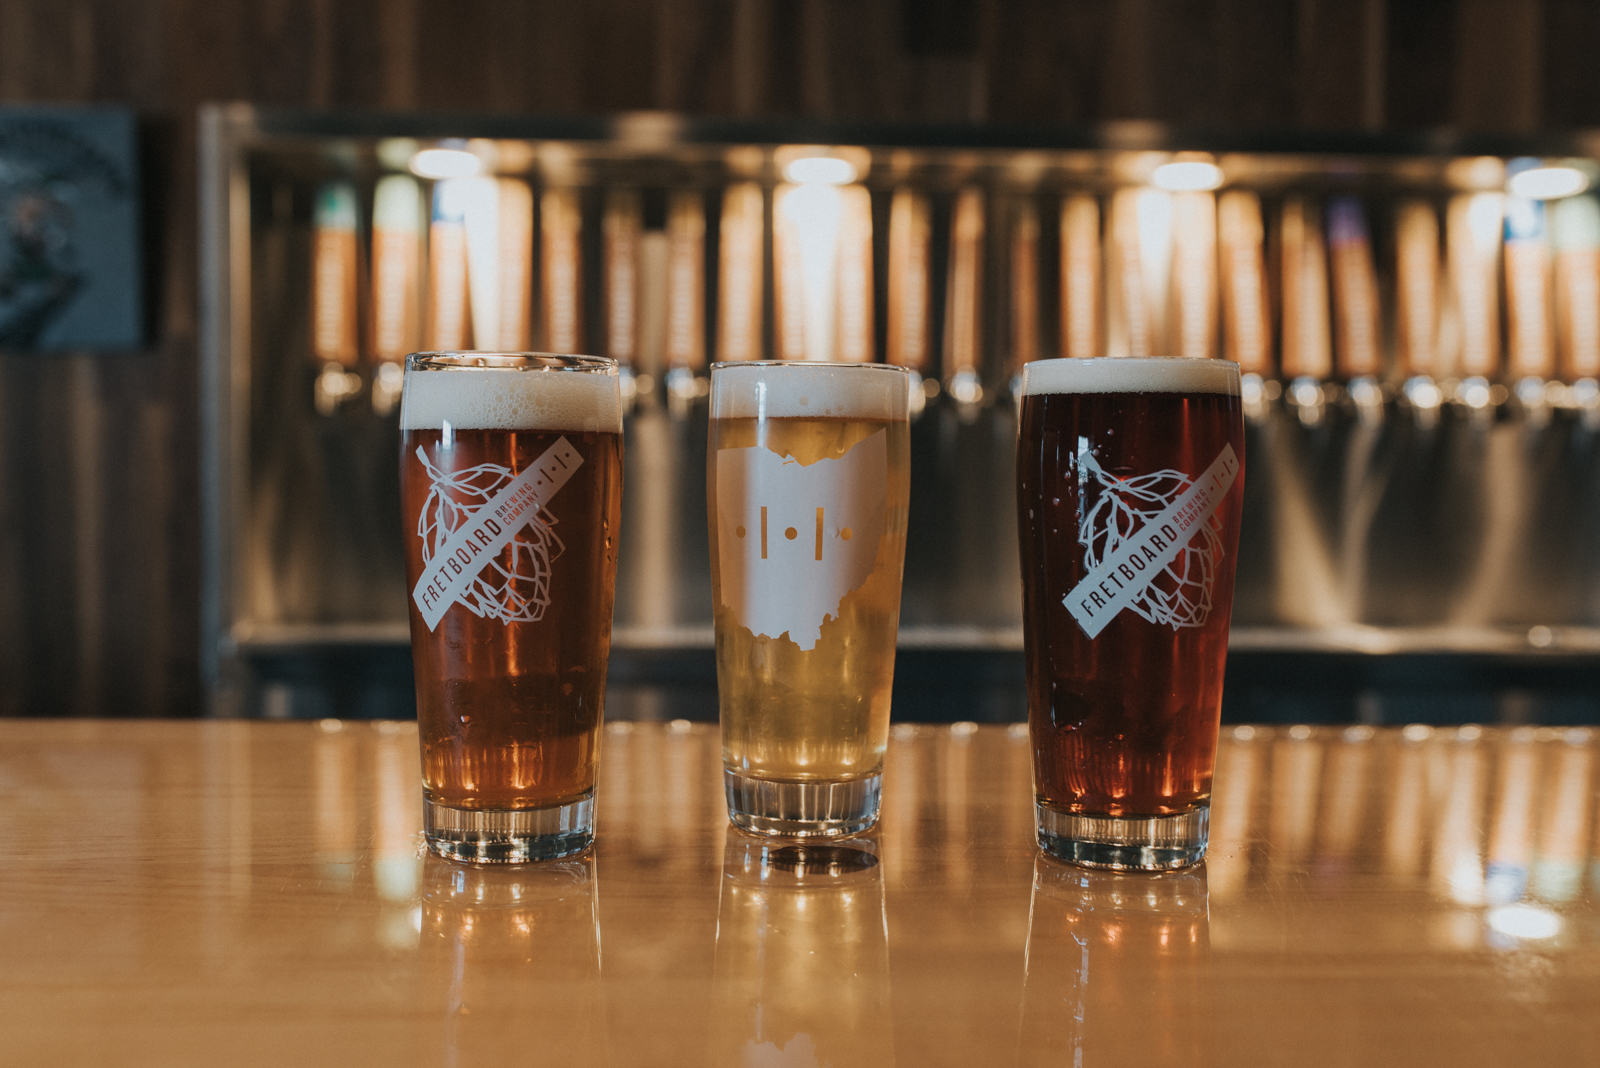 <p>Improv (IPA), Centerfield (India Session Pilsner), and Trey (American Amber) / Image: Brianna Long // Published 4.13.18</p>